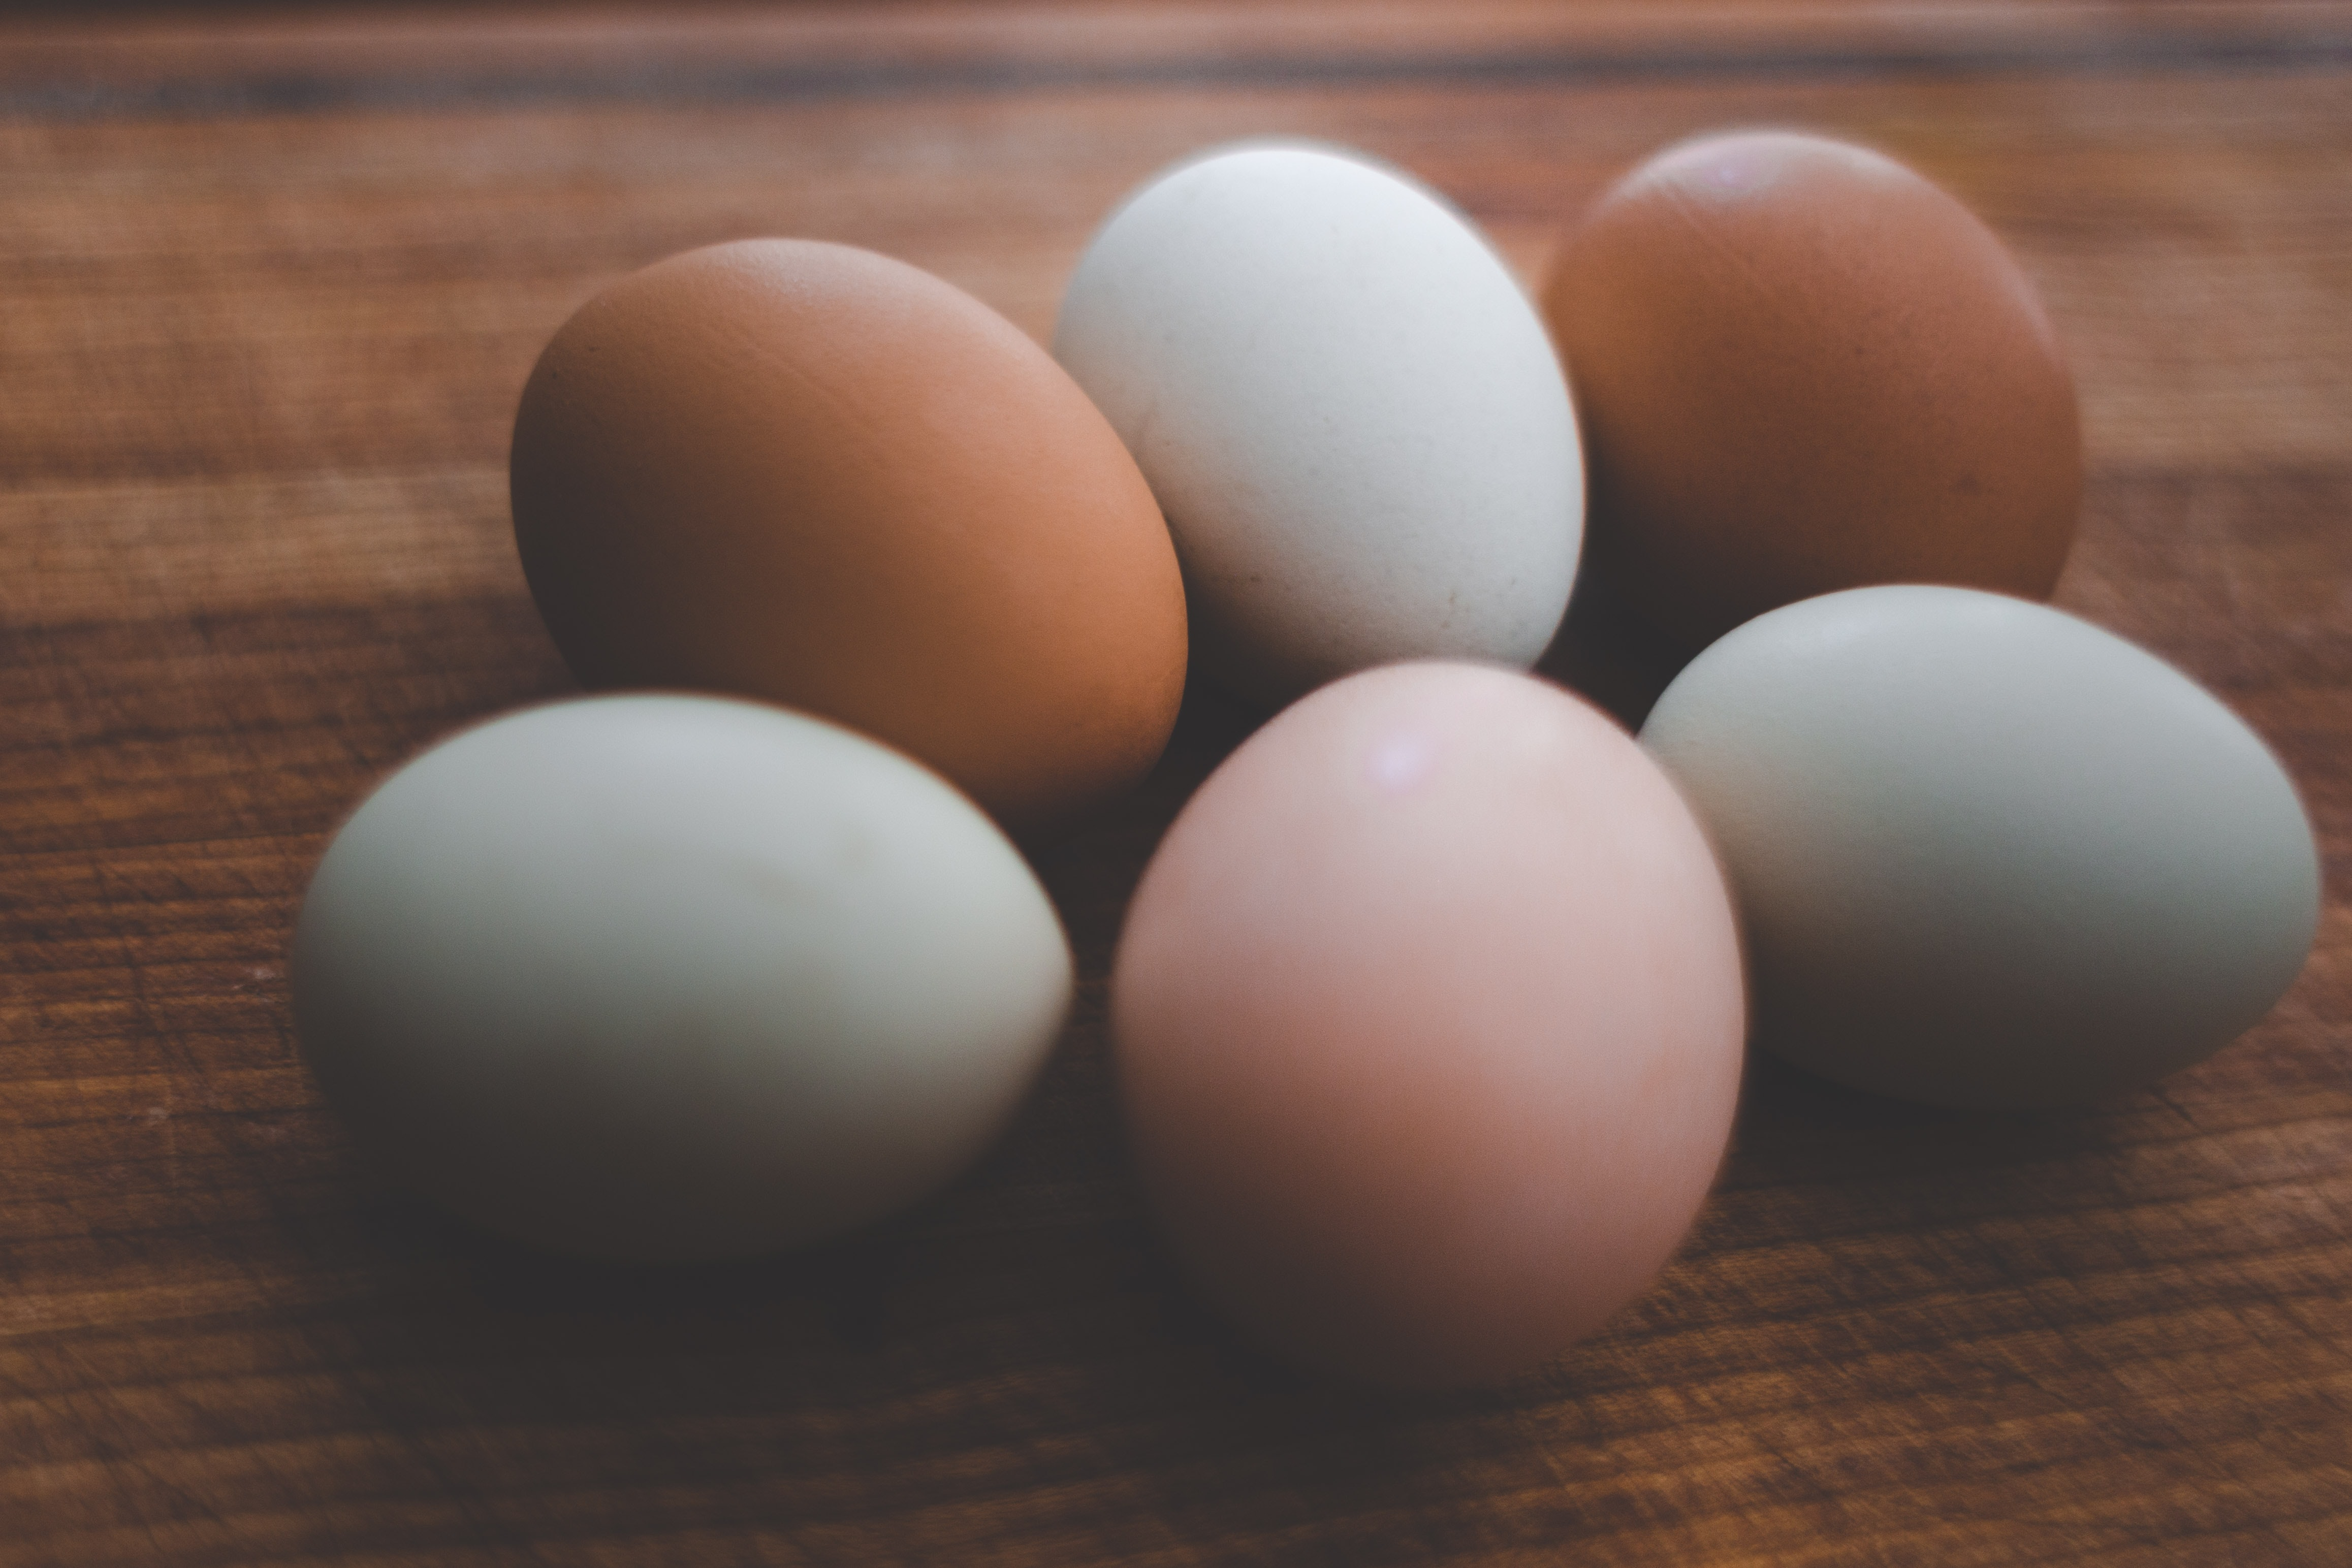 six brown and white egg on brown wooden surface